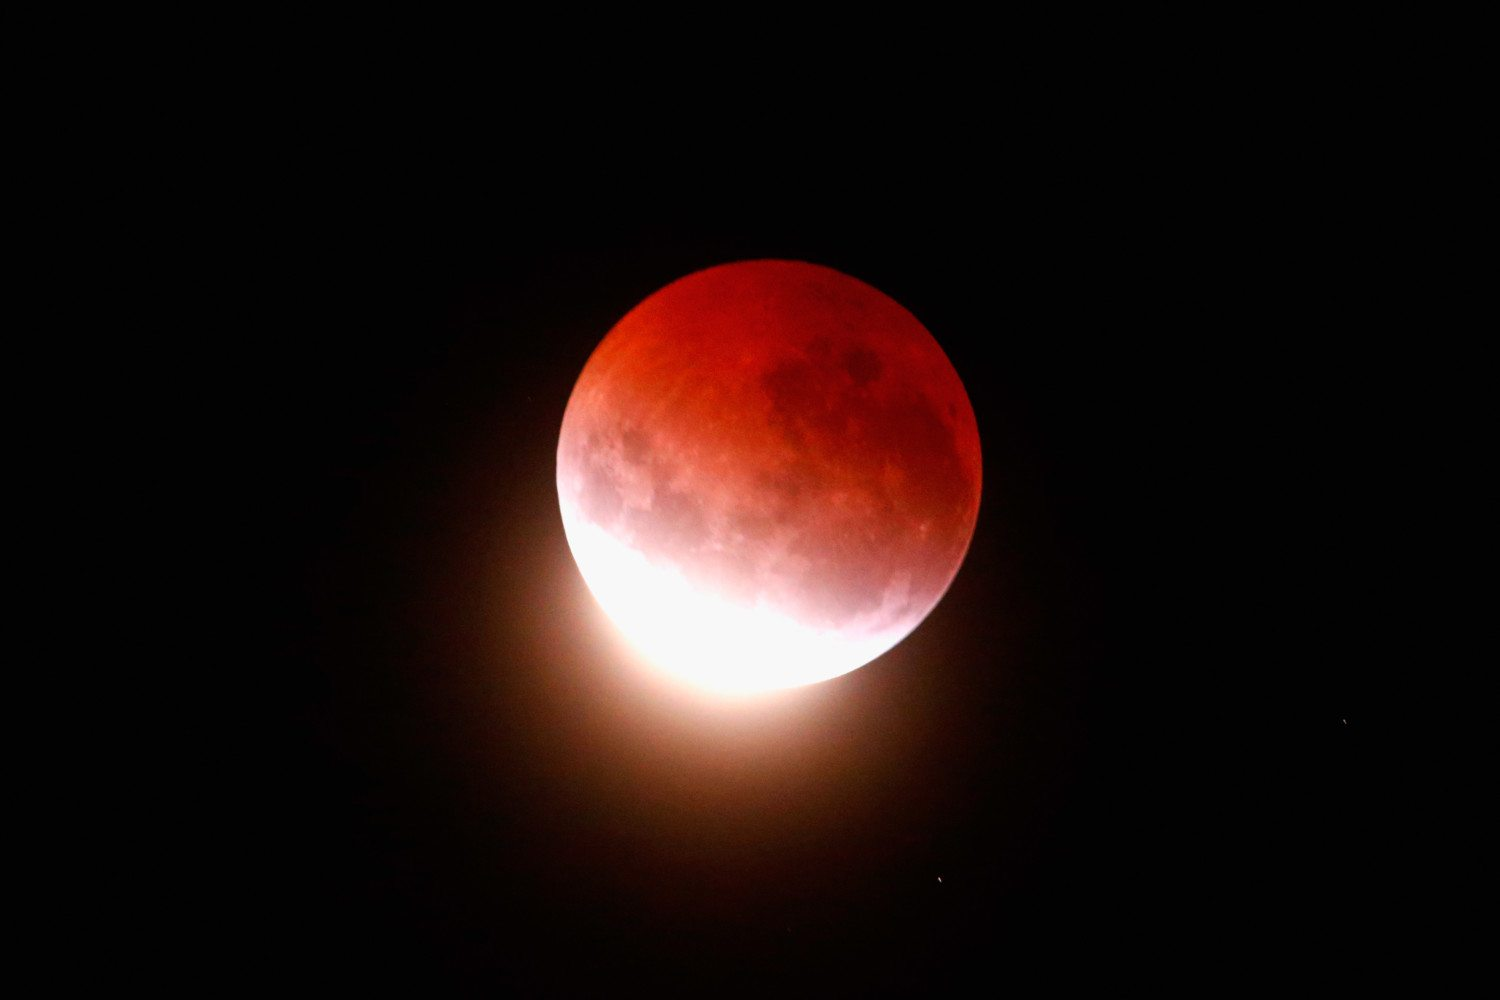 Longest lunar eclipse of the century happening in July